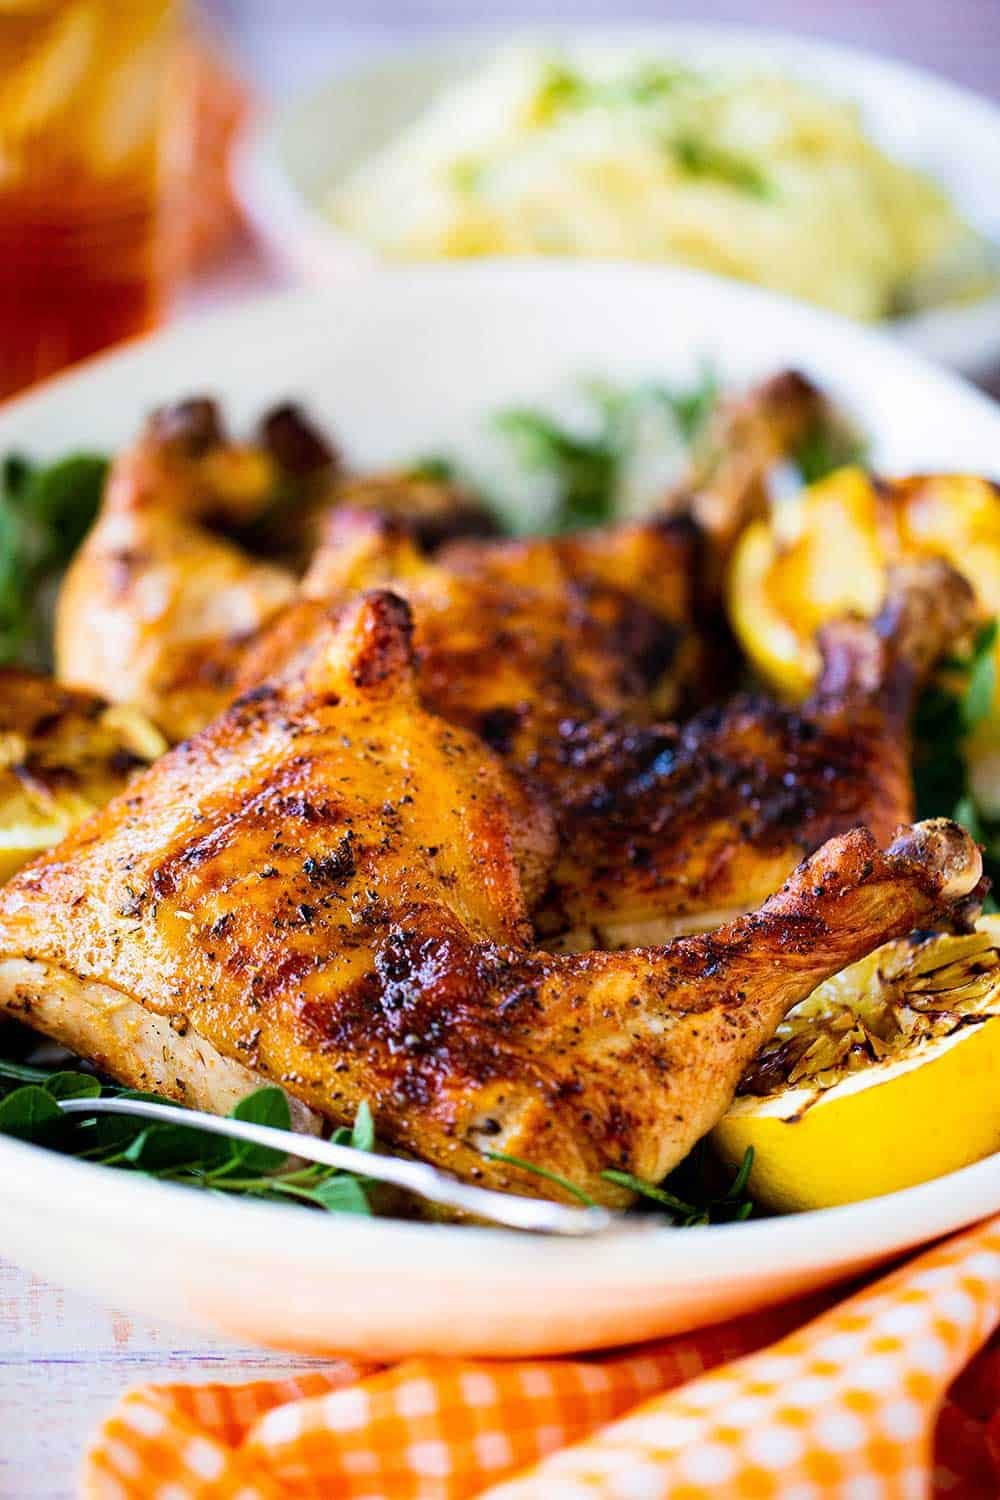 A grilled chicken leg quarter sitting on a platter next to grilled lemons and fresh herbs.